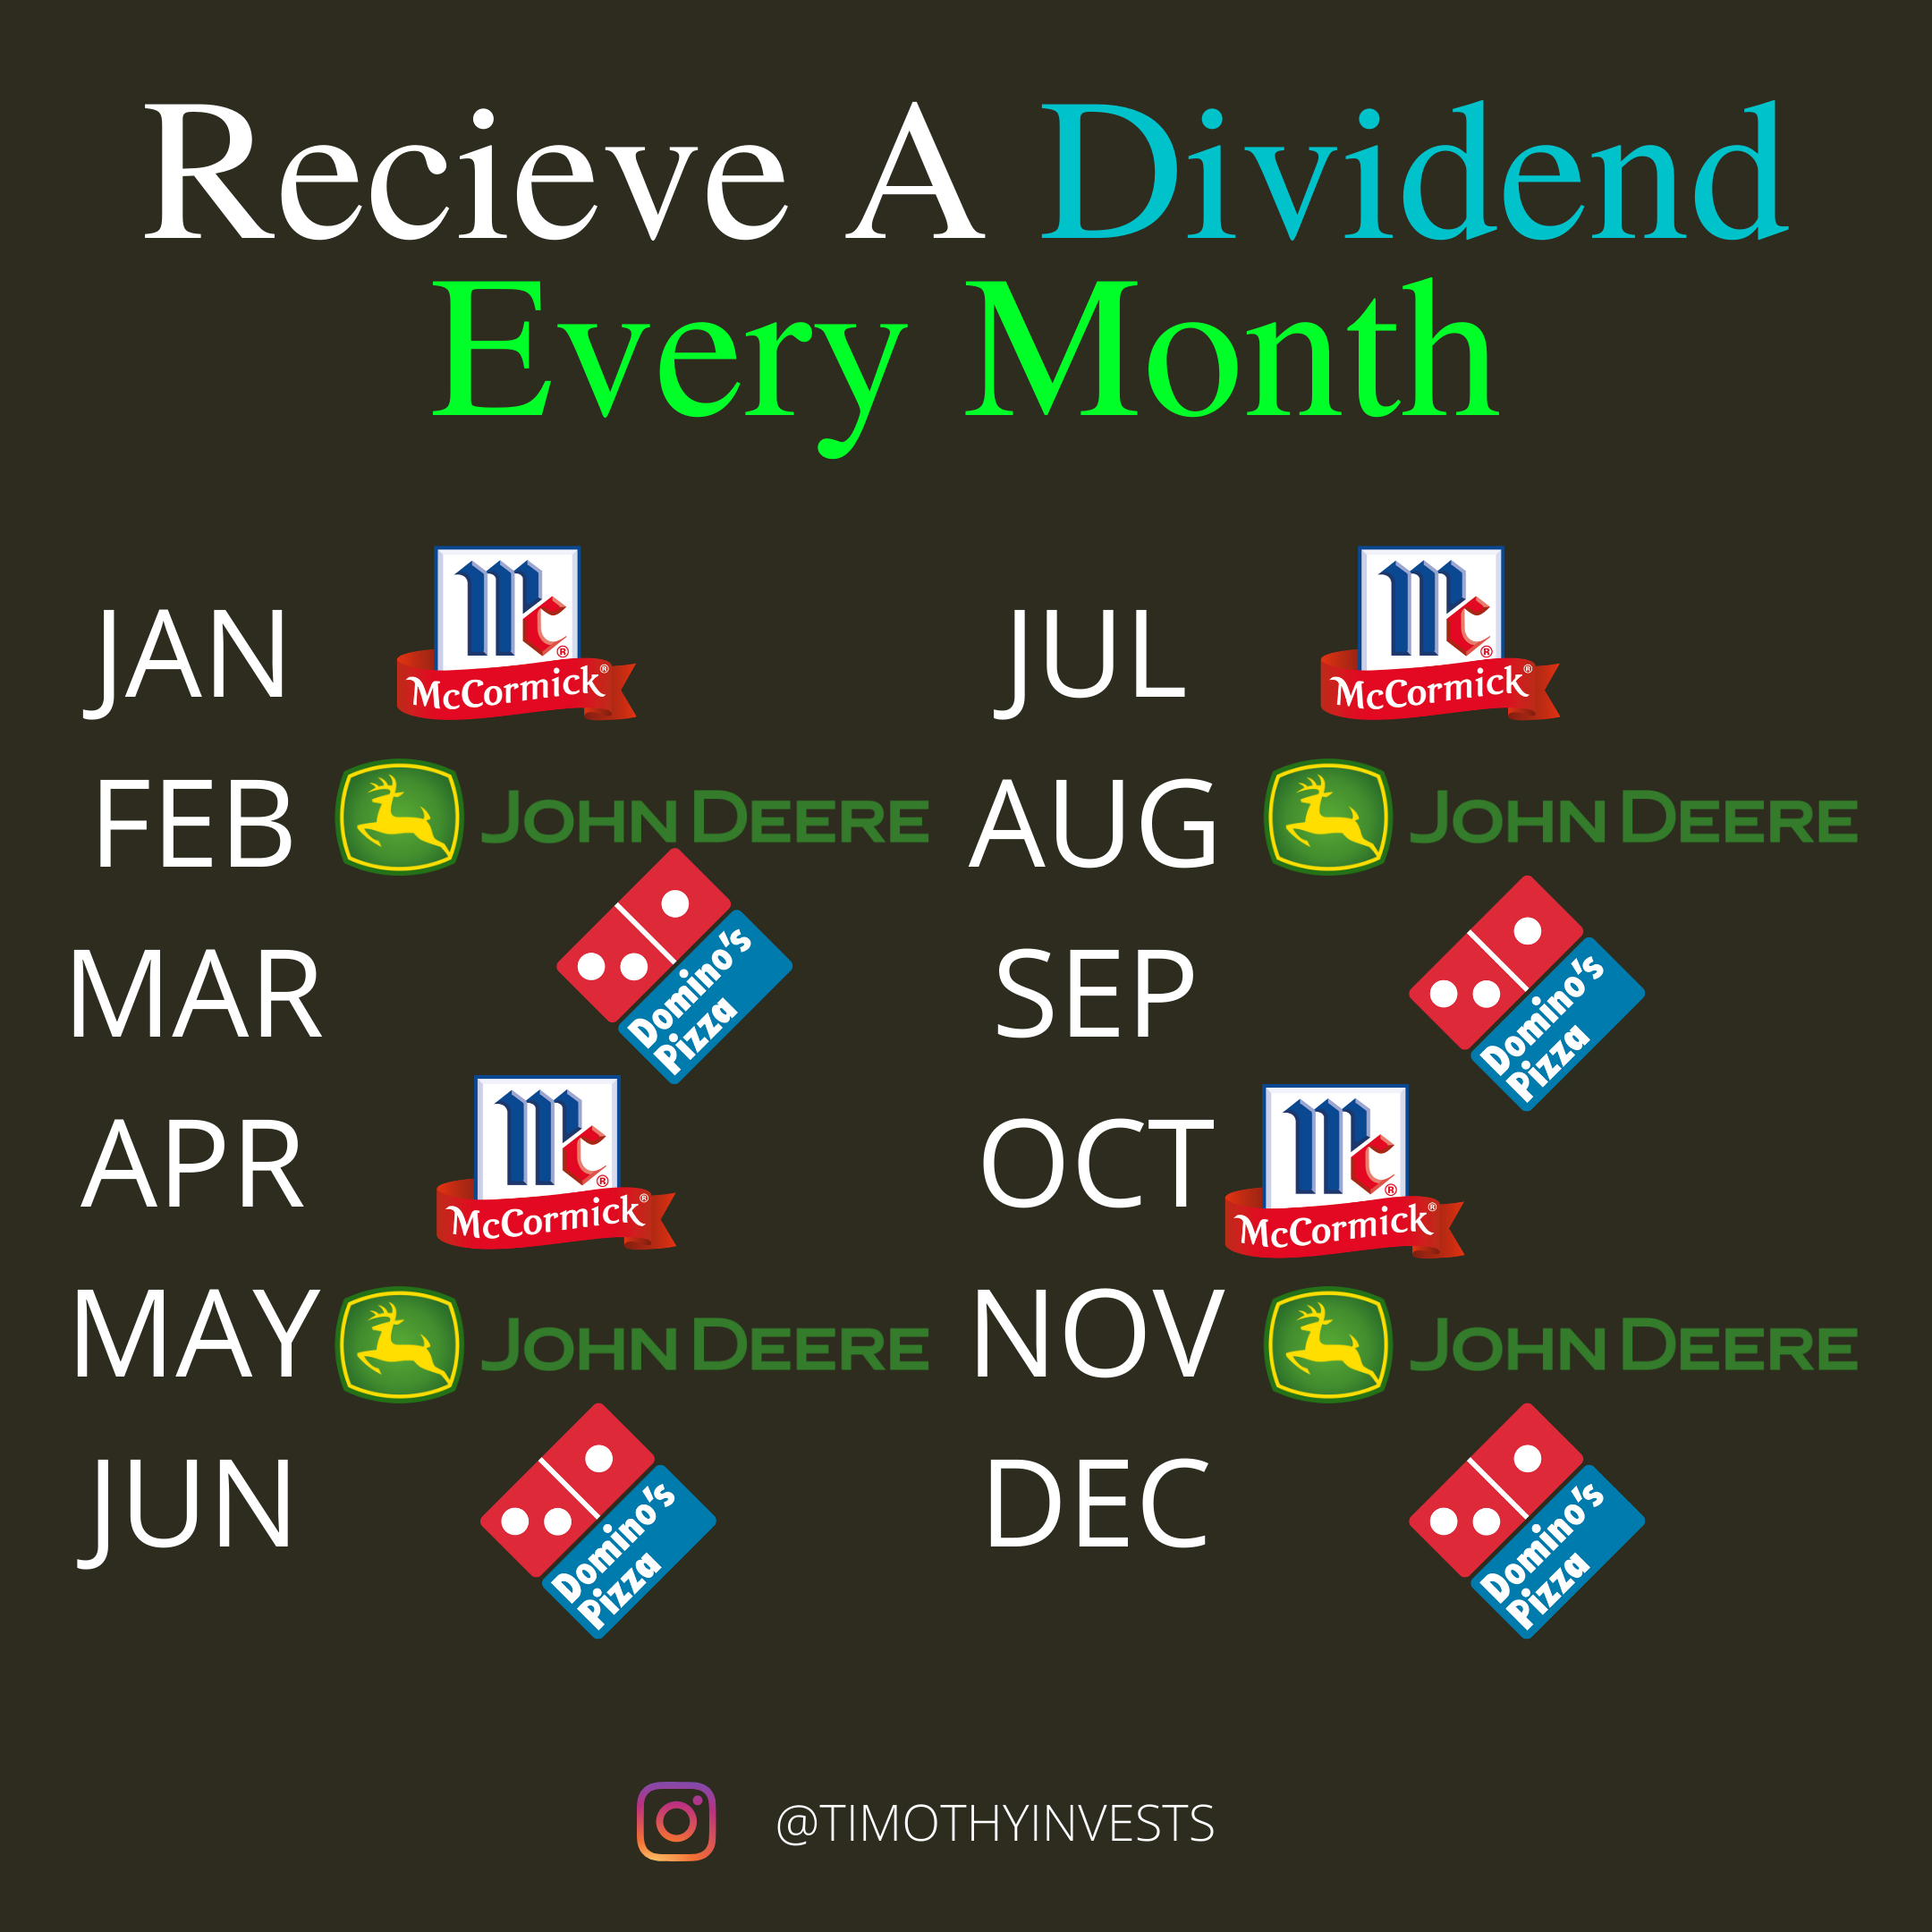 Open A New Account In The Next 24 Hours Robinhood Stock Market Investing Ideas Of Stock Market Inves In 2020 Investing Money Finance Investing Dividend Investing